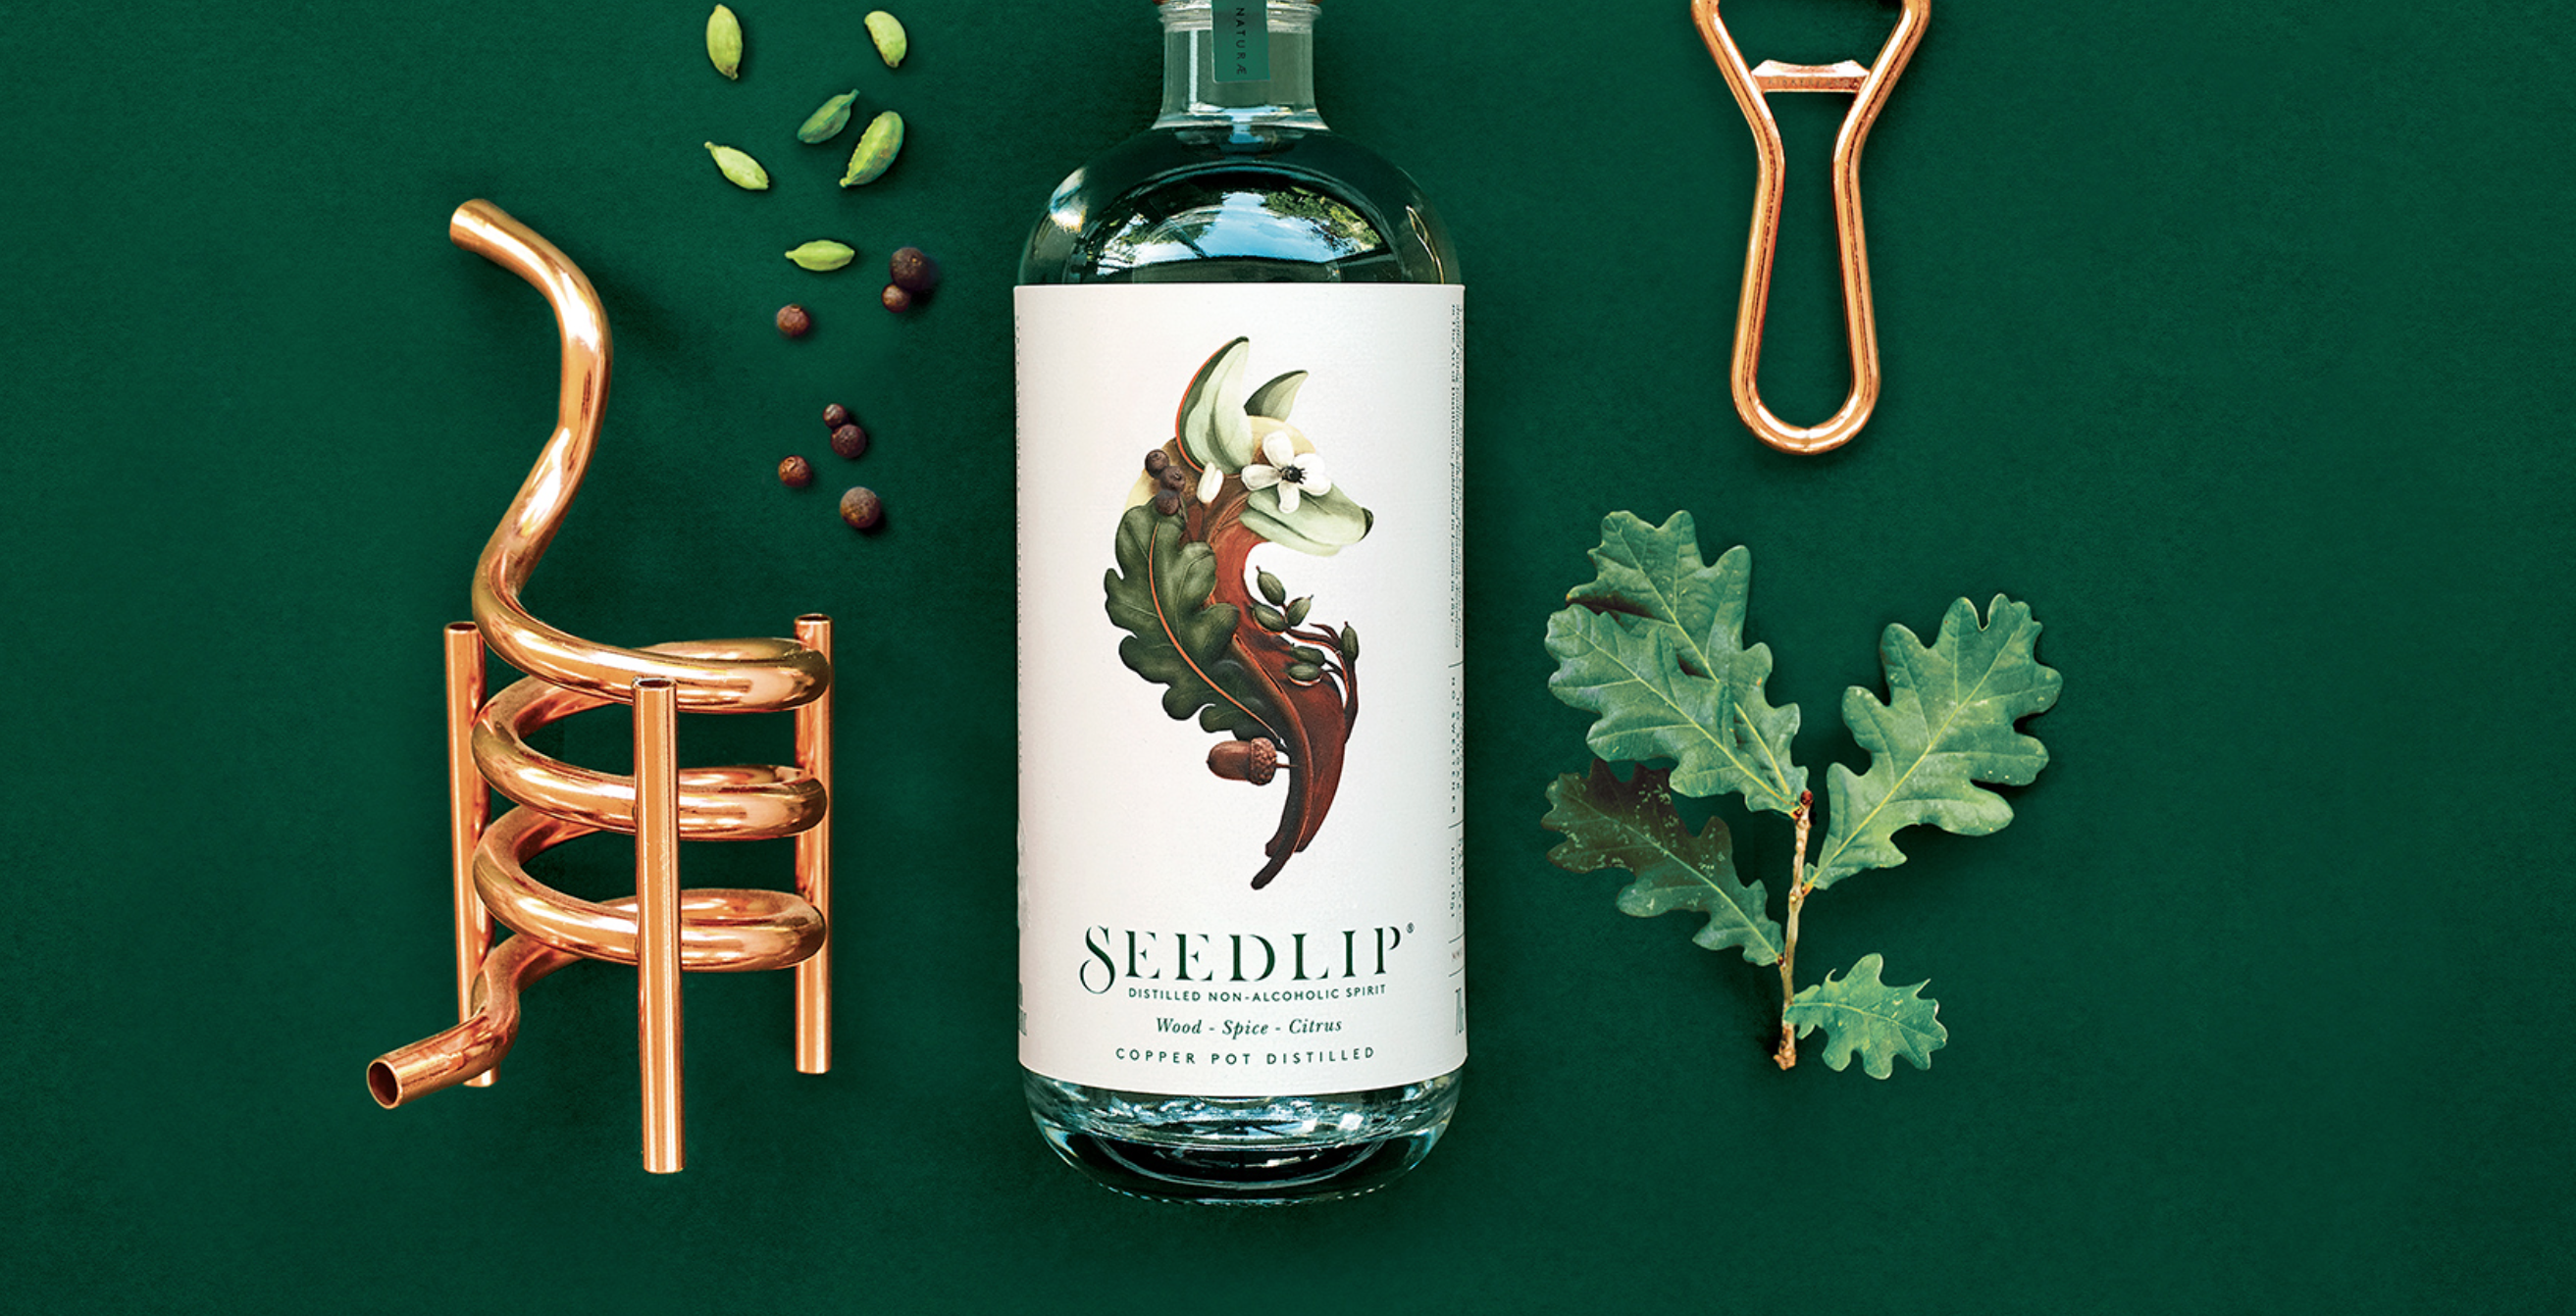 Seedlip packaging design 3